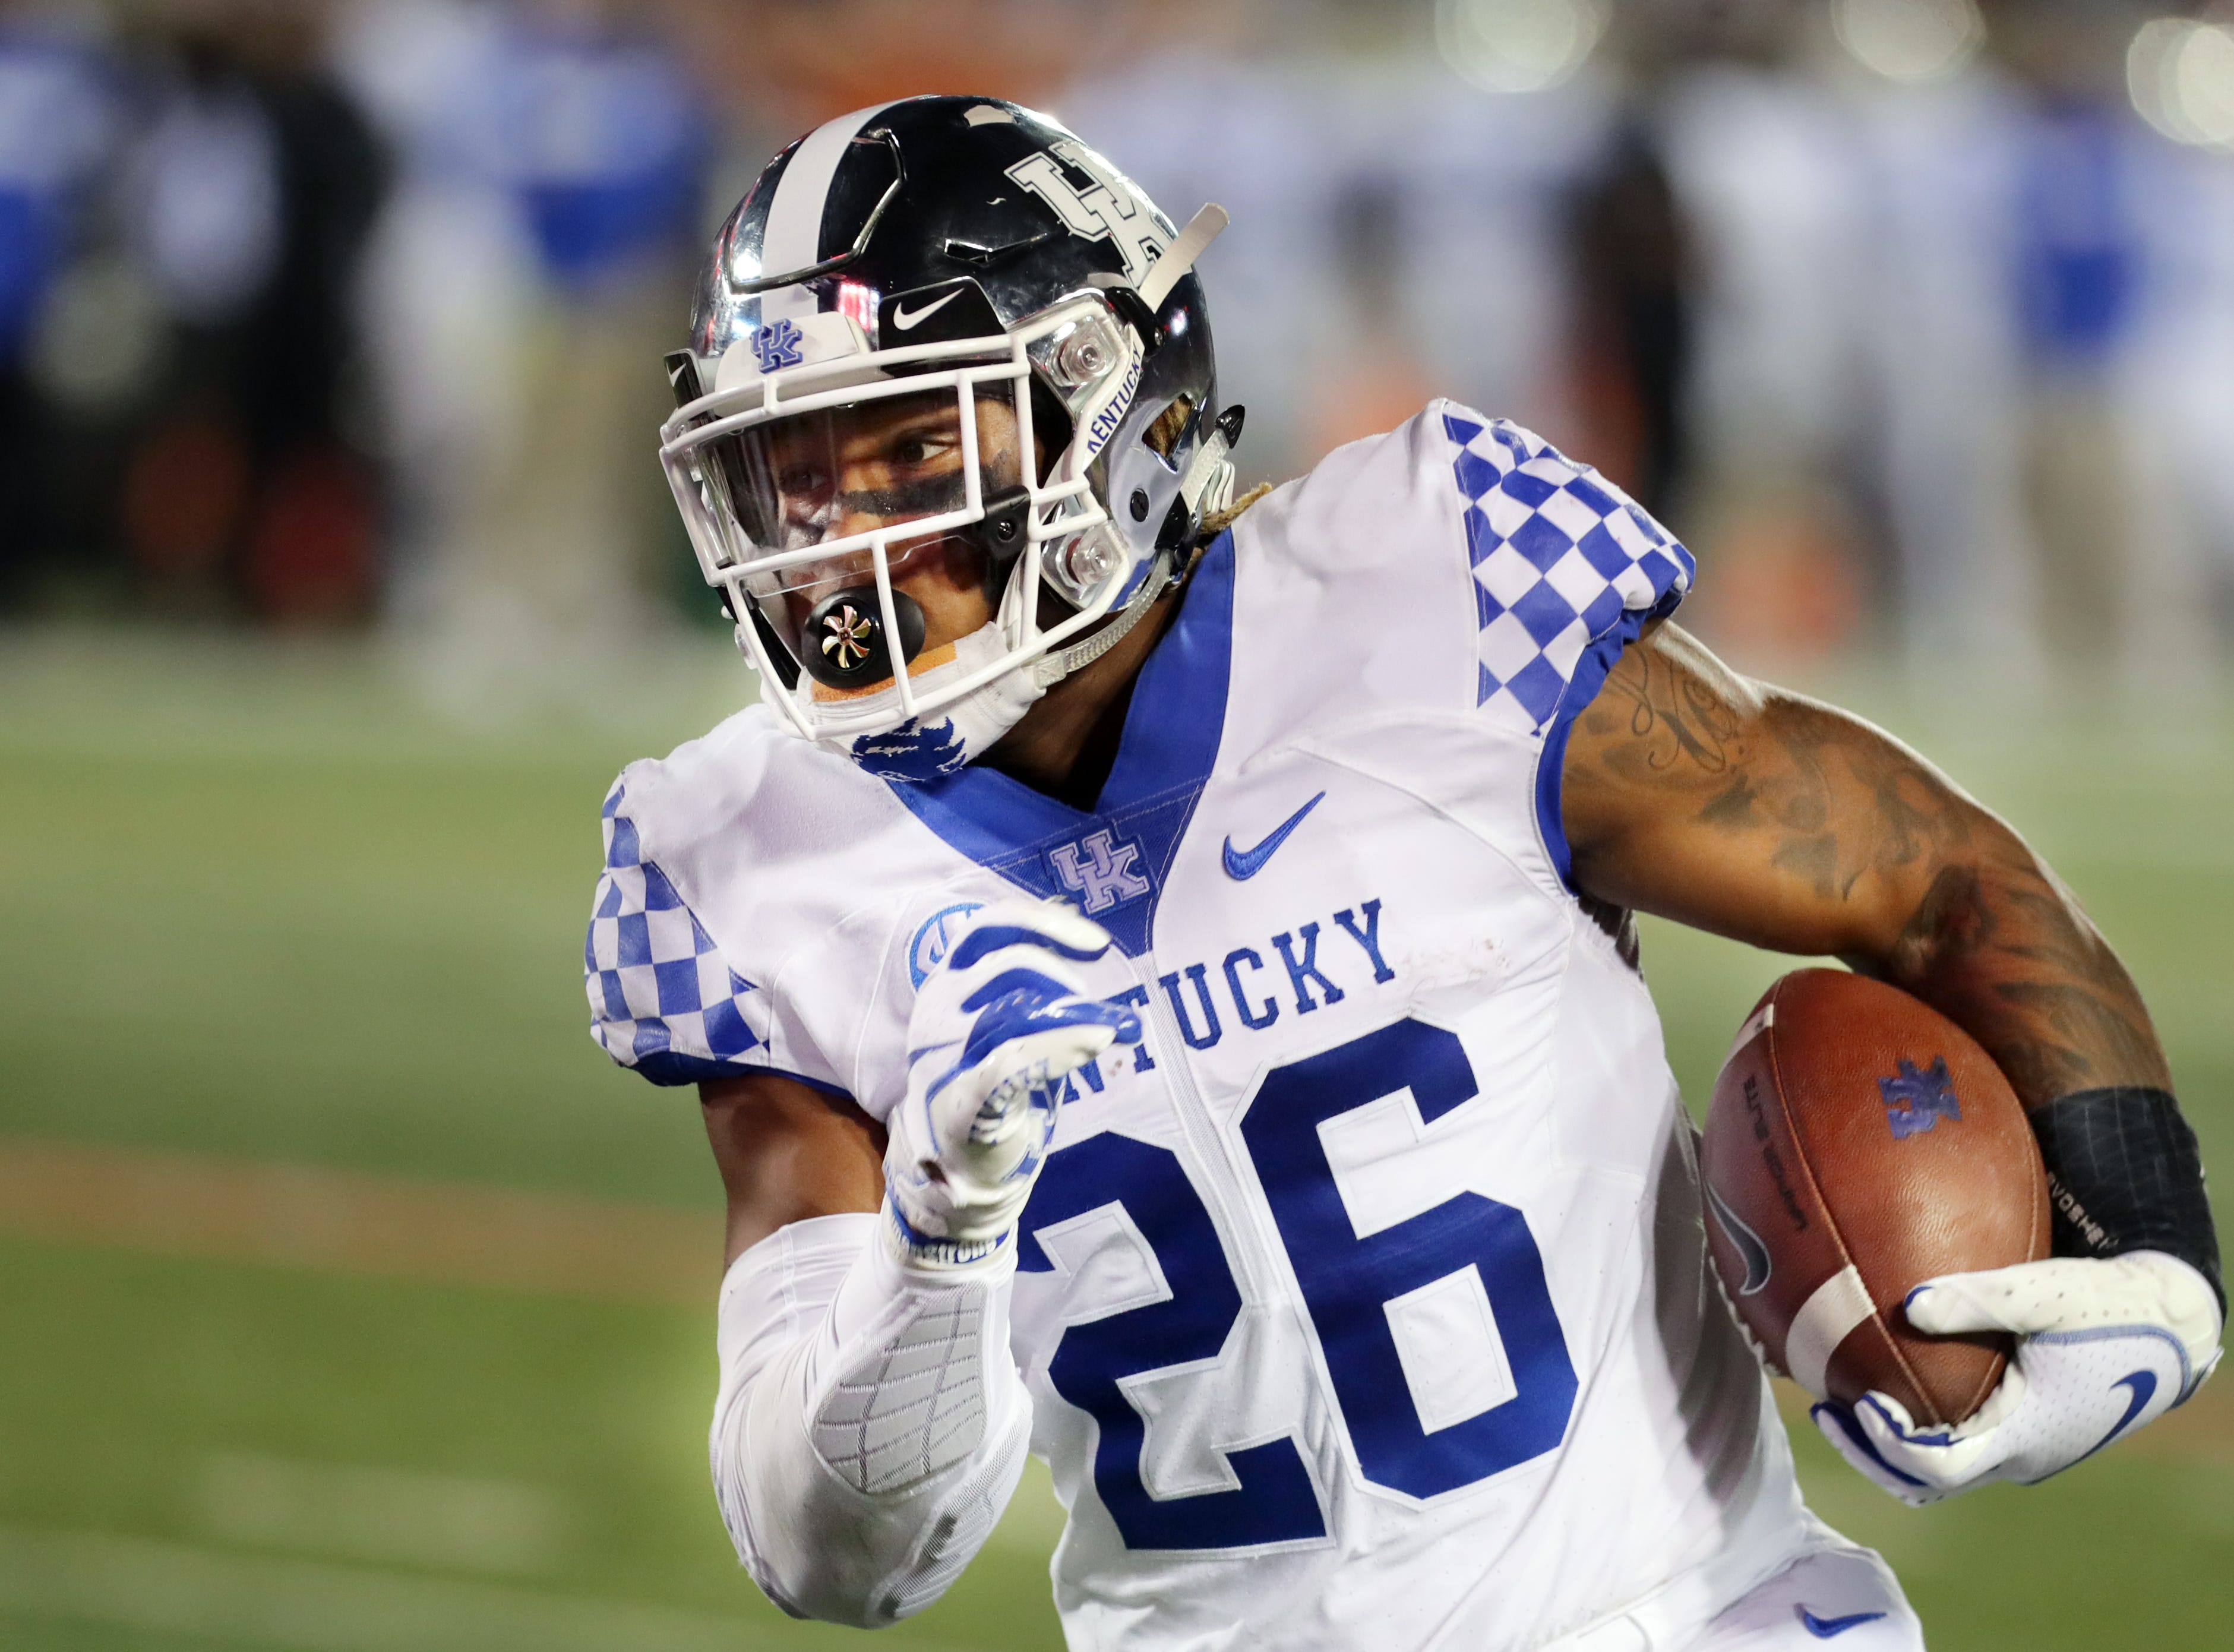 Kentucky's Benny Snell Jr. is untouched as he goes in for a touchdown. 